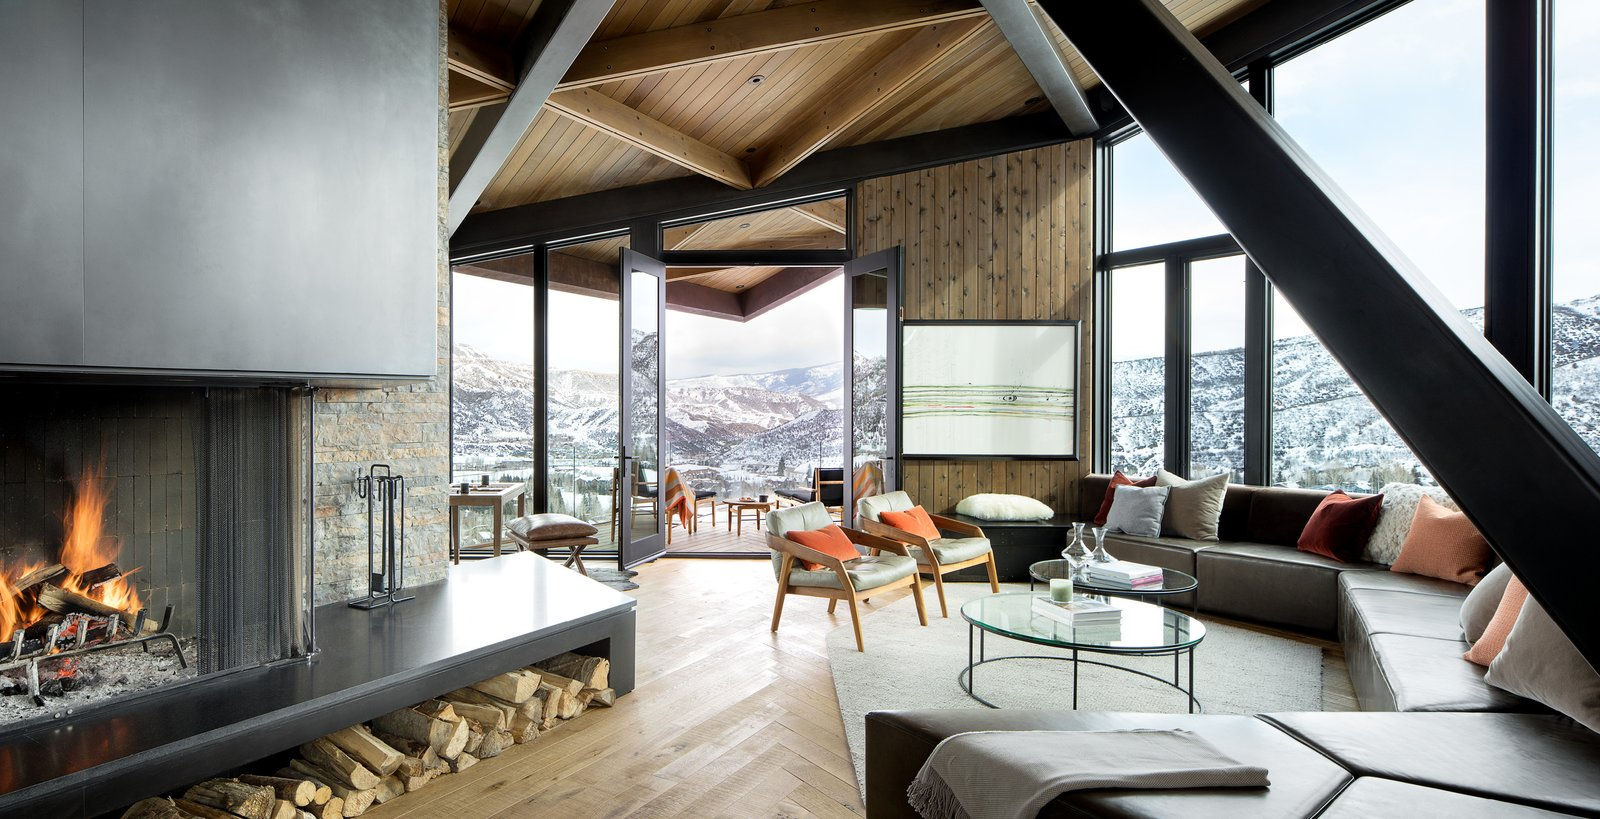 Living Room, Sectional, Coffee Tables, Chair, Standard Layout Fireplace, Rug Floor, Recessed Lighting, Ottomans, Wood Burning Fireplace, and Medium Hardwood Floor  Photo 4 of 16 in An Angular Mountain Retreat in Colorado Captures Breathtaking Views